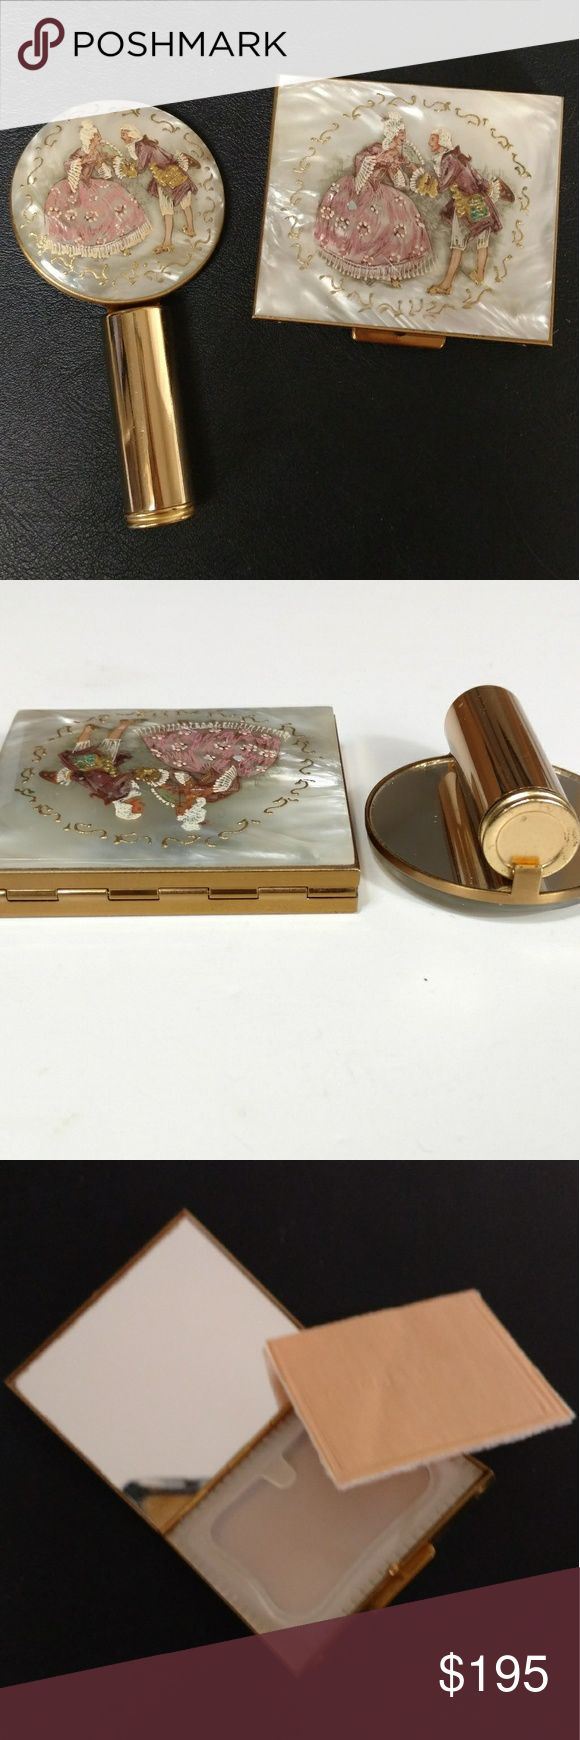 Vintage 1950s compact & lipstick set Wiesner This set is by Wiesner of Miami from their Trickettes line.  You can find ads for Wiesner in nearly every 1950s issue of Vogue.  Never used, the compact still has the sticker affixed.  The covers are mother of pearl with an 18th century romantic scene.  Both compact and lipstick holder have mirrors. Very rare item, especially as a set in this condition. Vintage Accessories